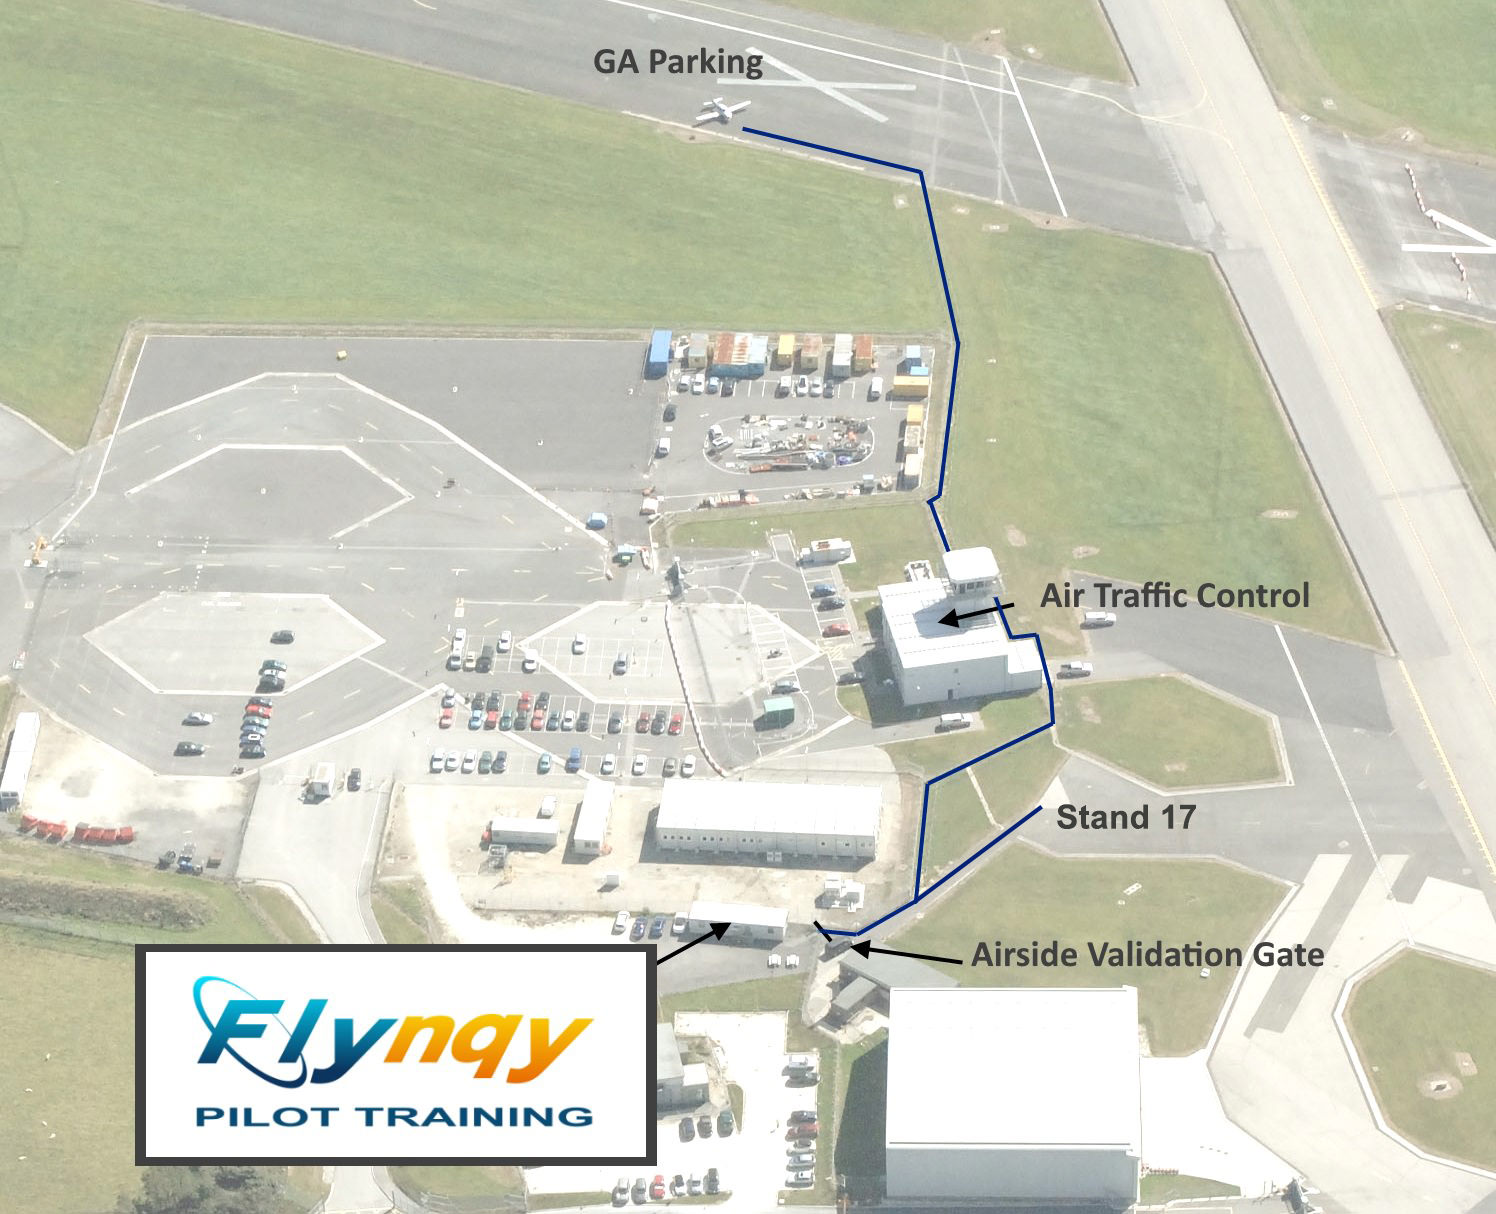 Map from GA Park to Flynqy Pilot Training